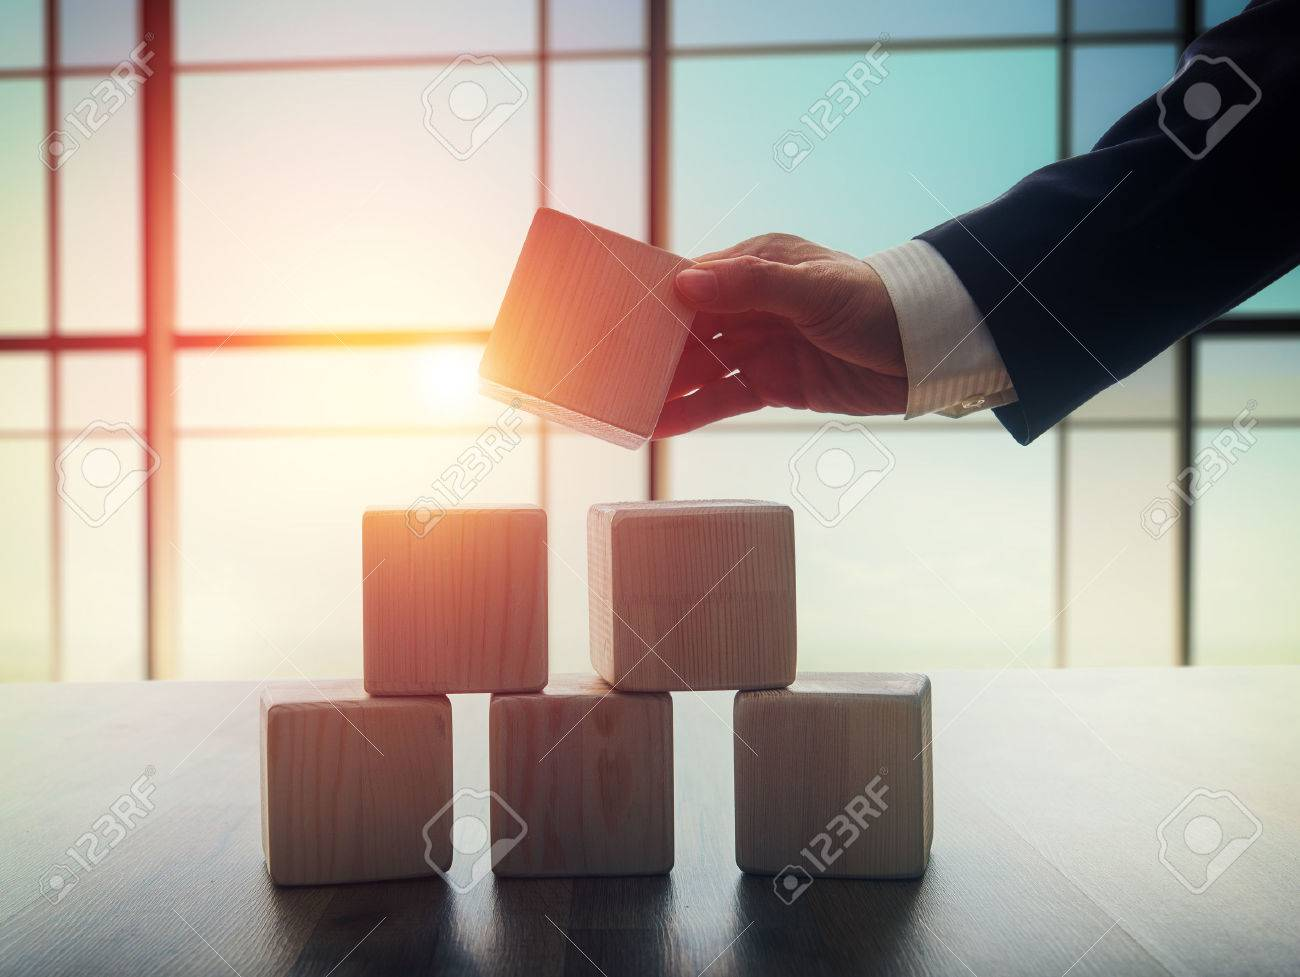 The concept of planning in business. Wooden cubes on a desk in the office. The concept of leadership. Hand men in business suit holding the cubes. - 52484027